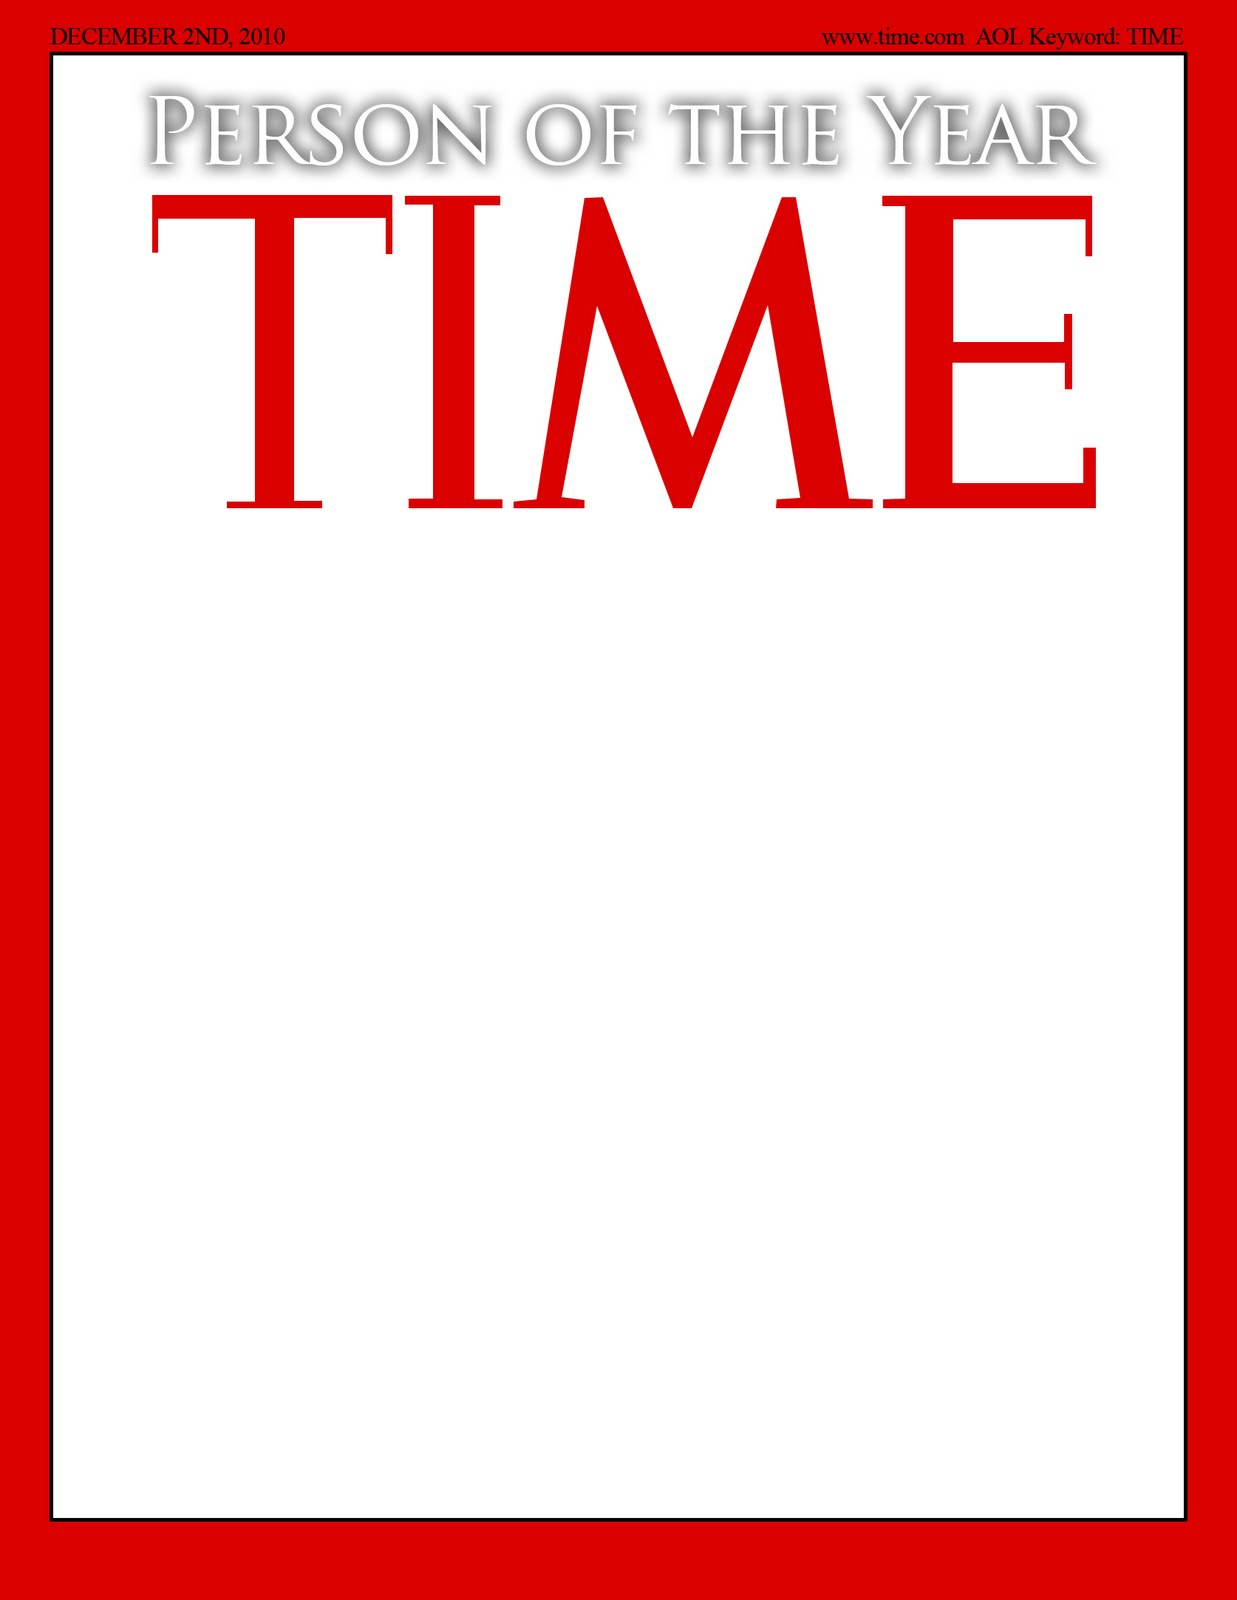 Photoshop skillz sub day time magazine project for Magazine cover page template psd